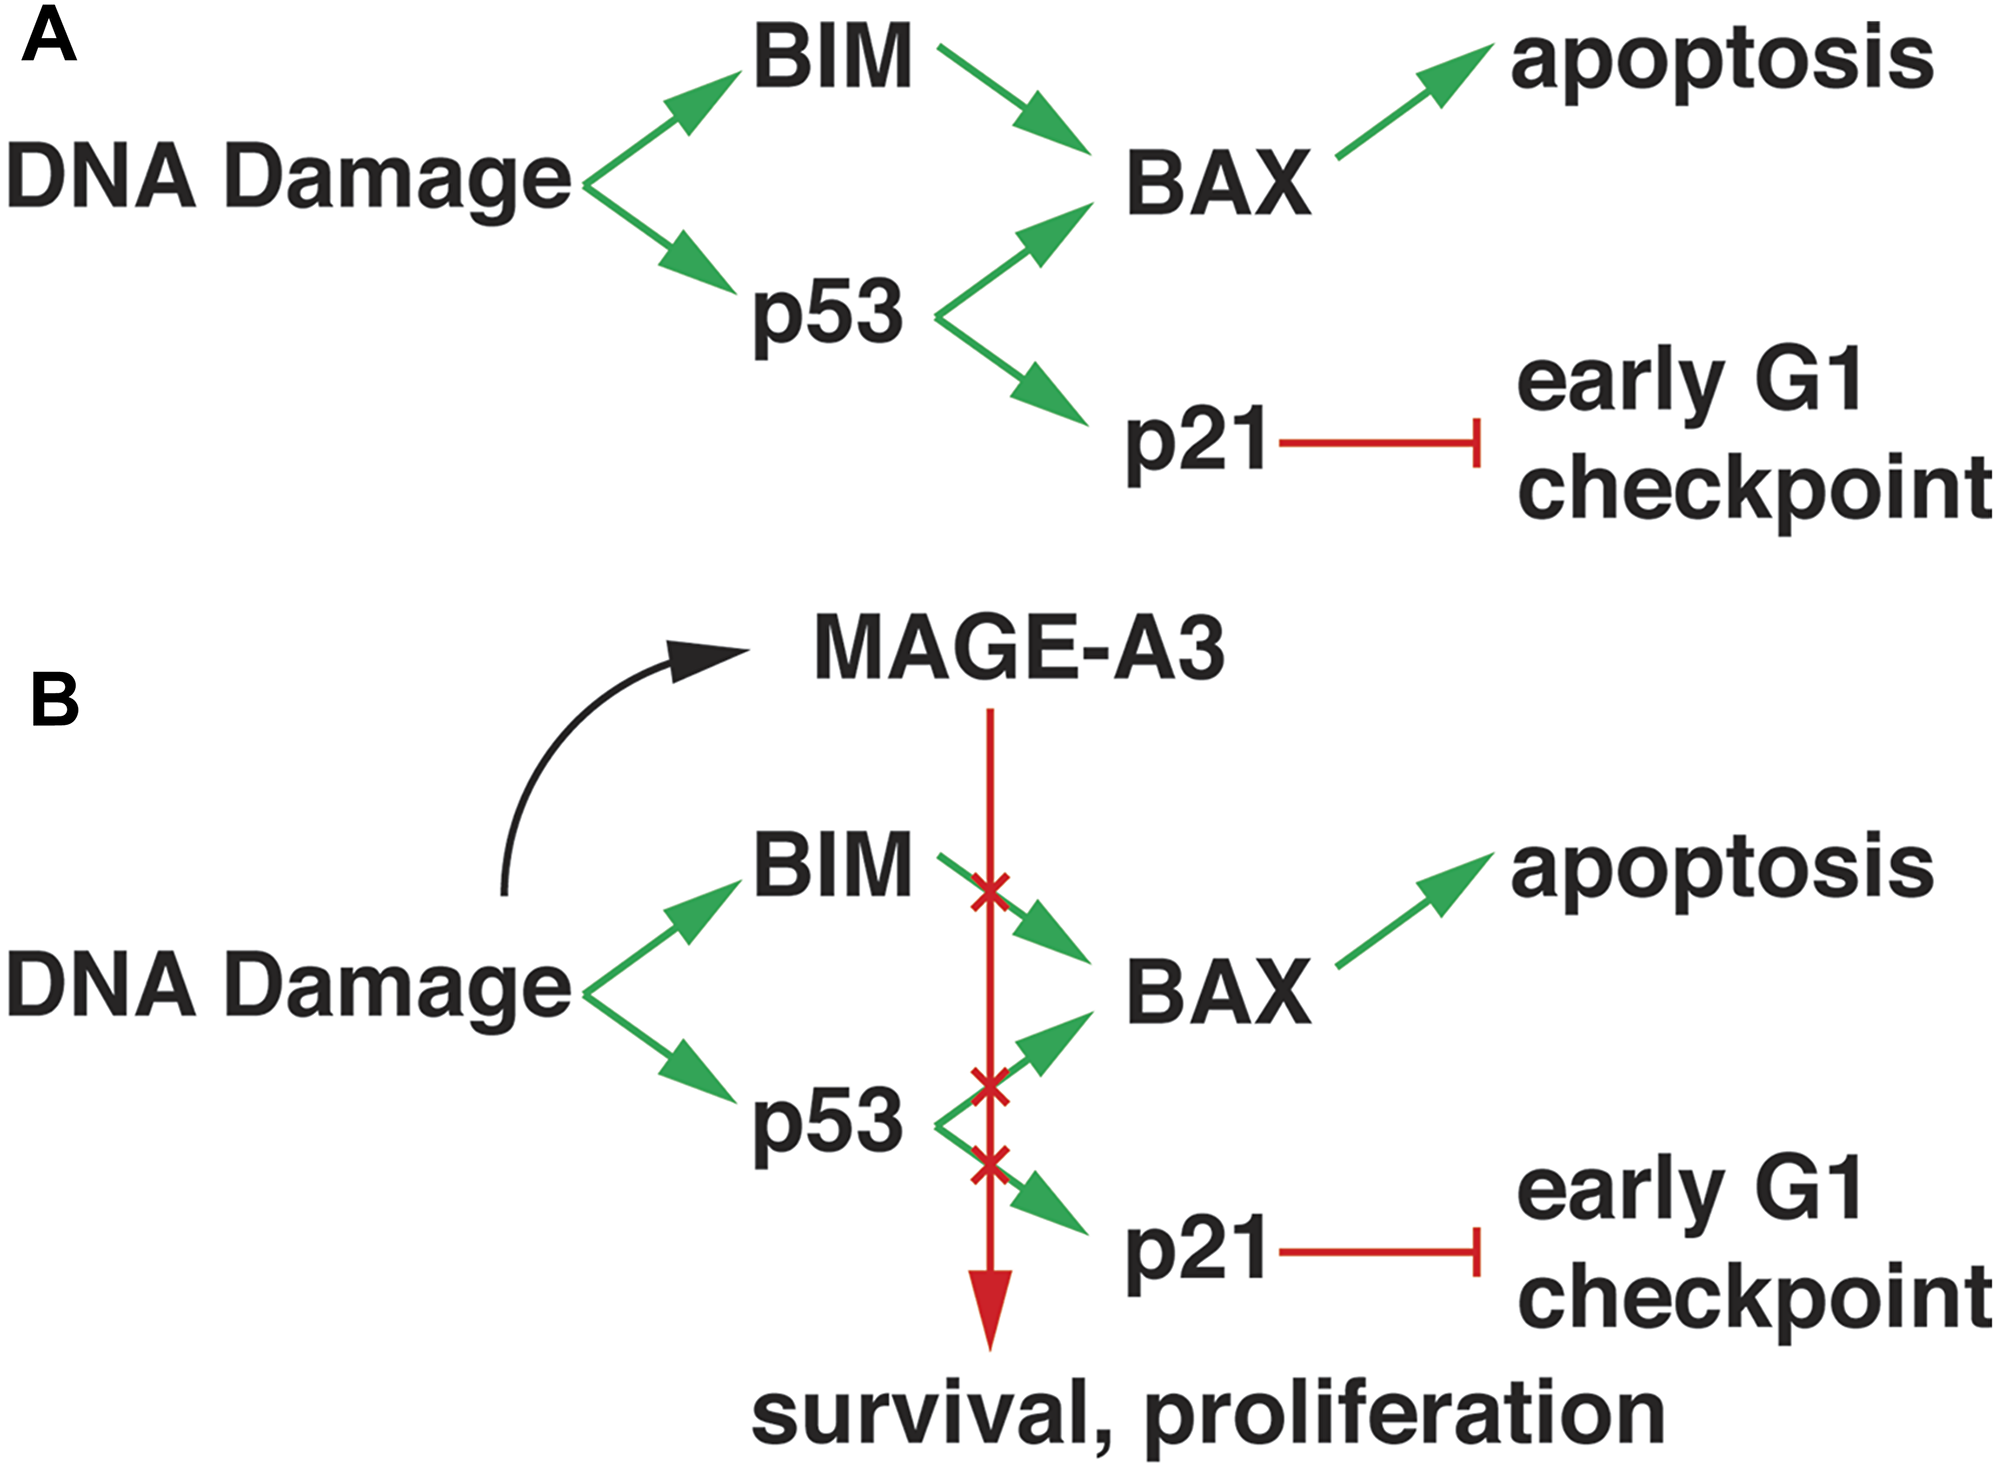 Model of MAGE-A3 activity in MM.